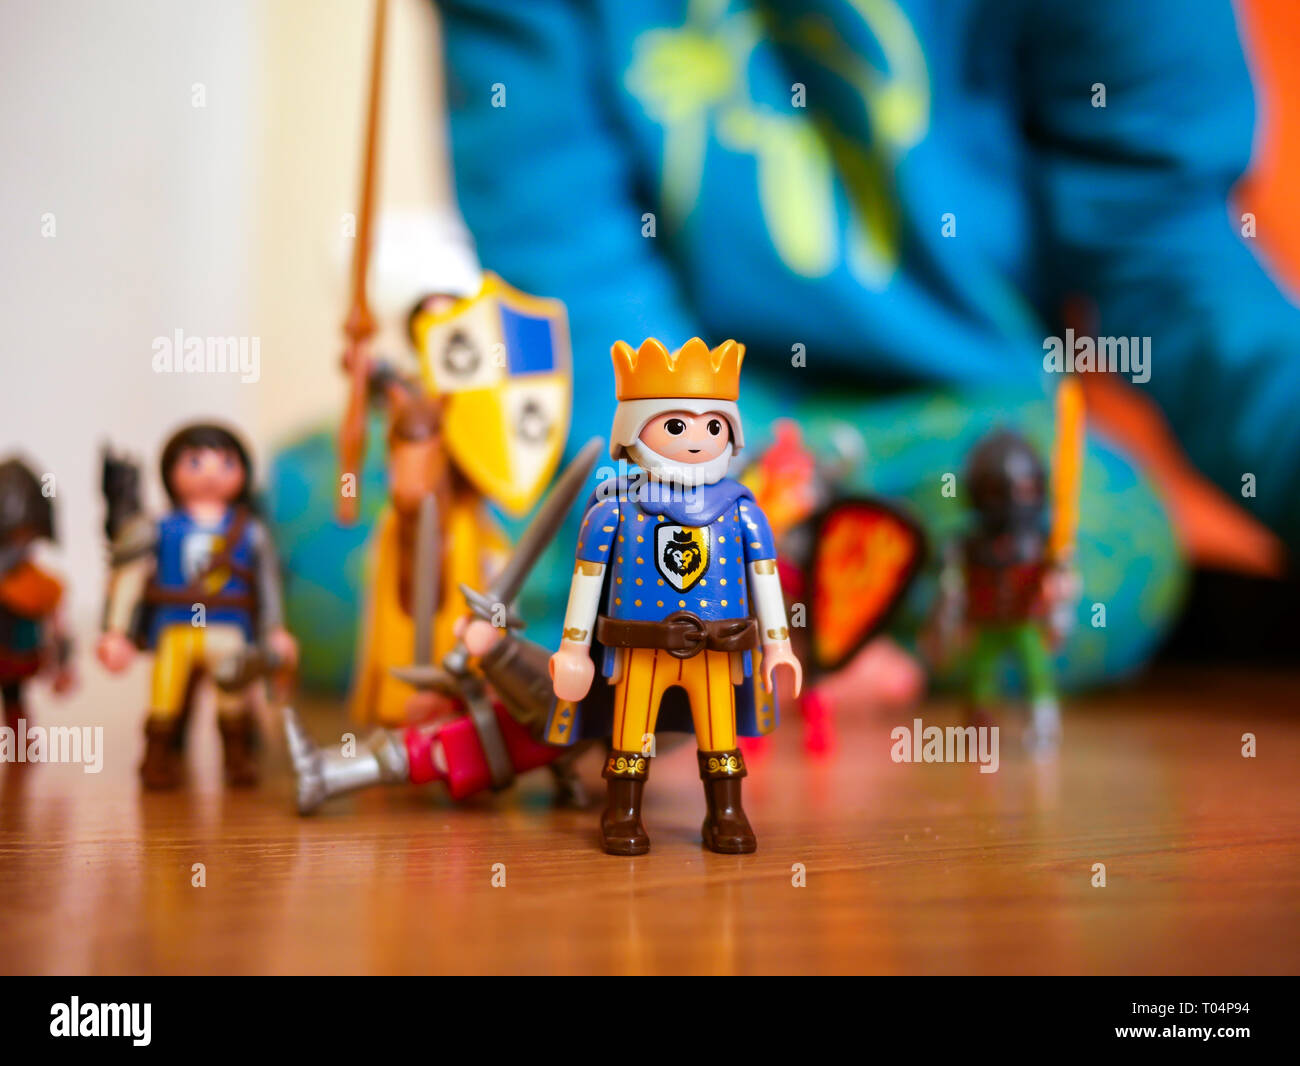 toy soldiers, King of knights in the children's room Stock Photo